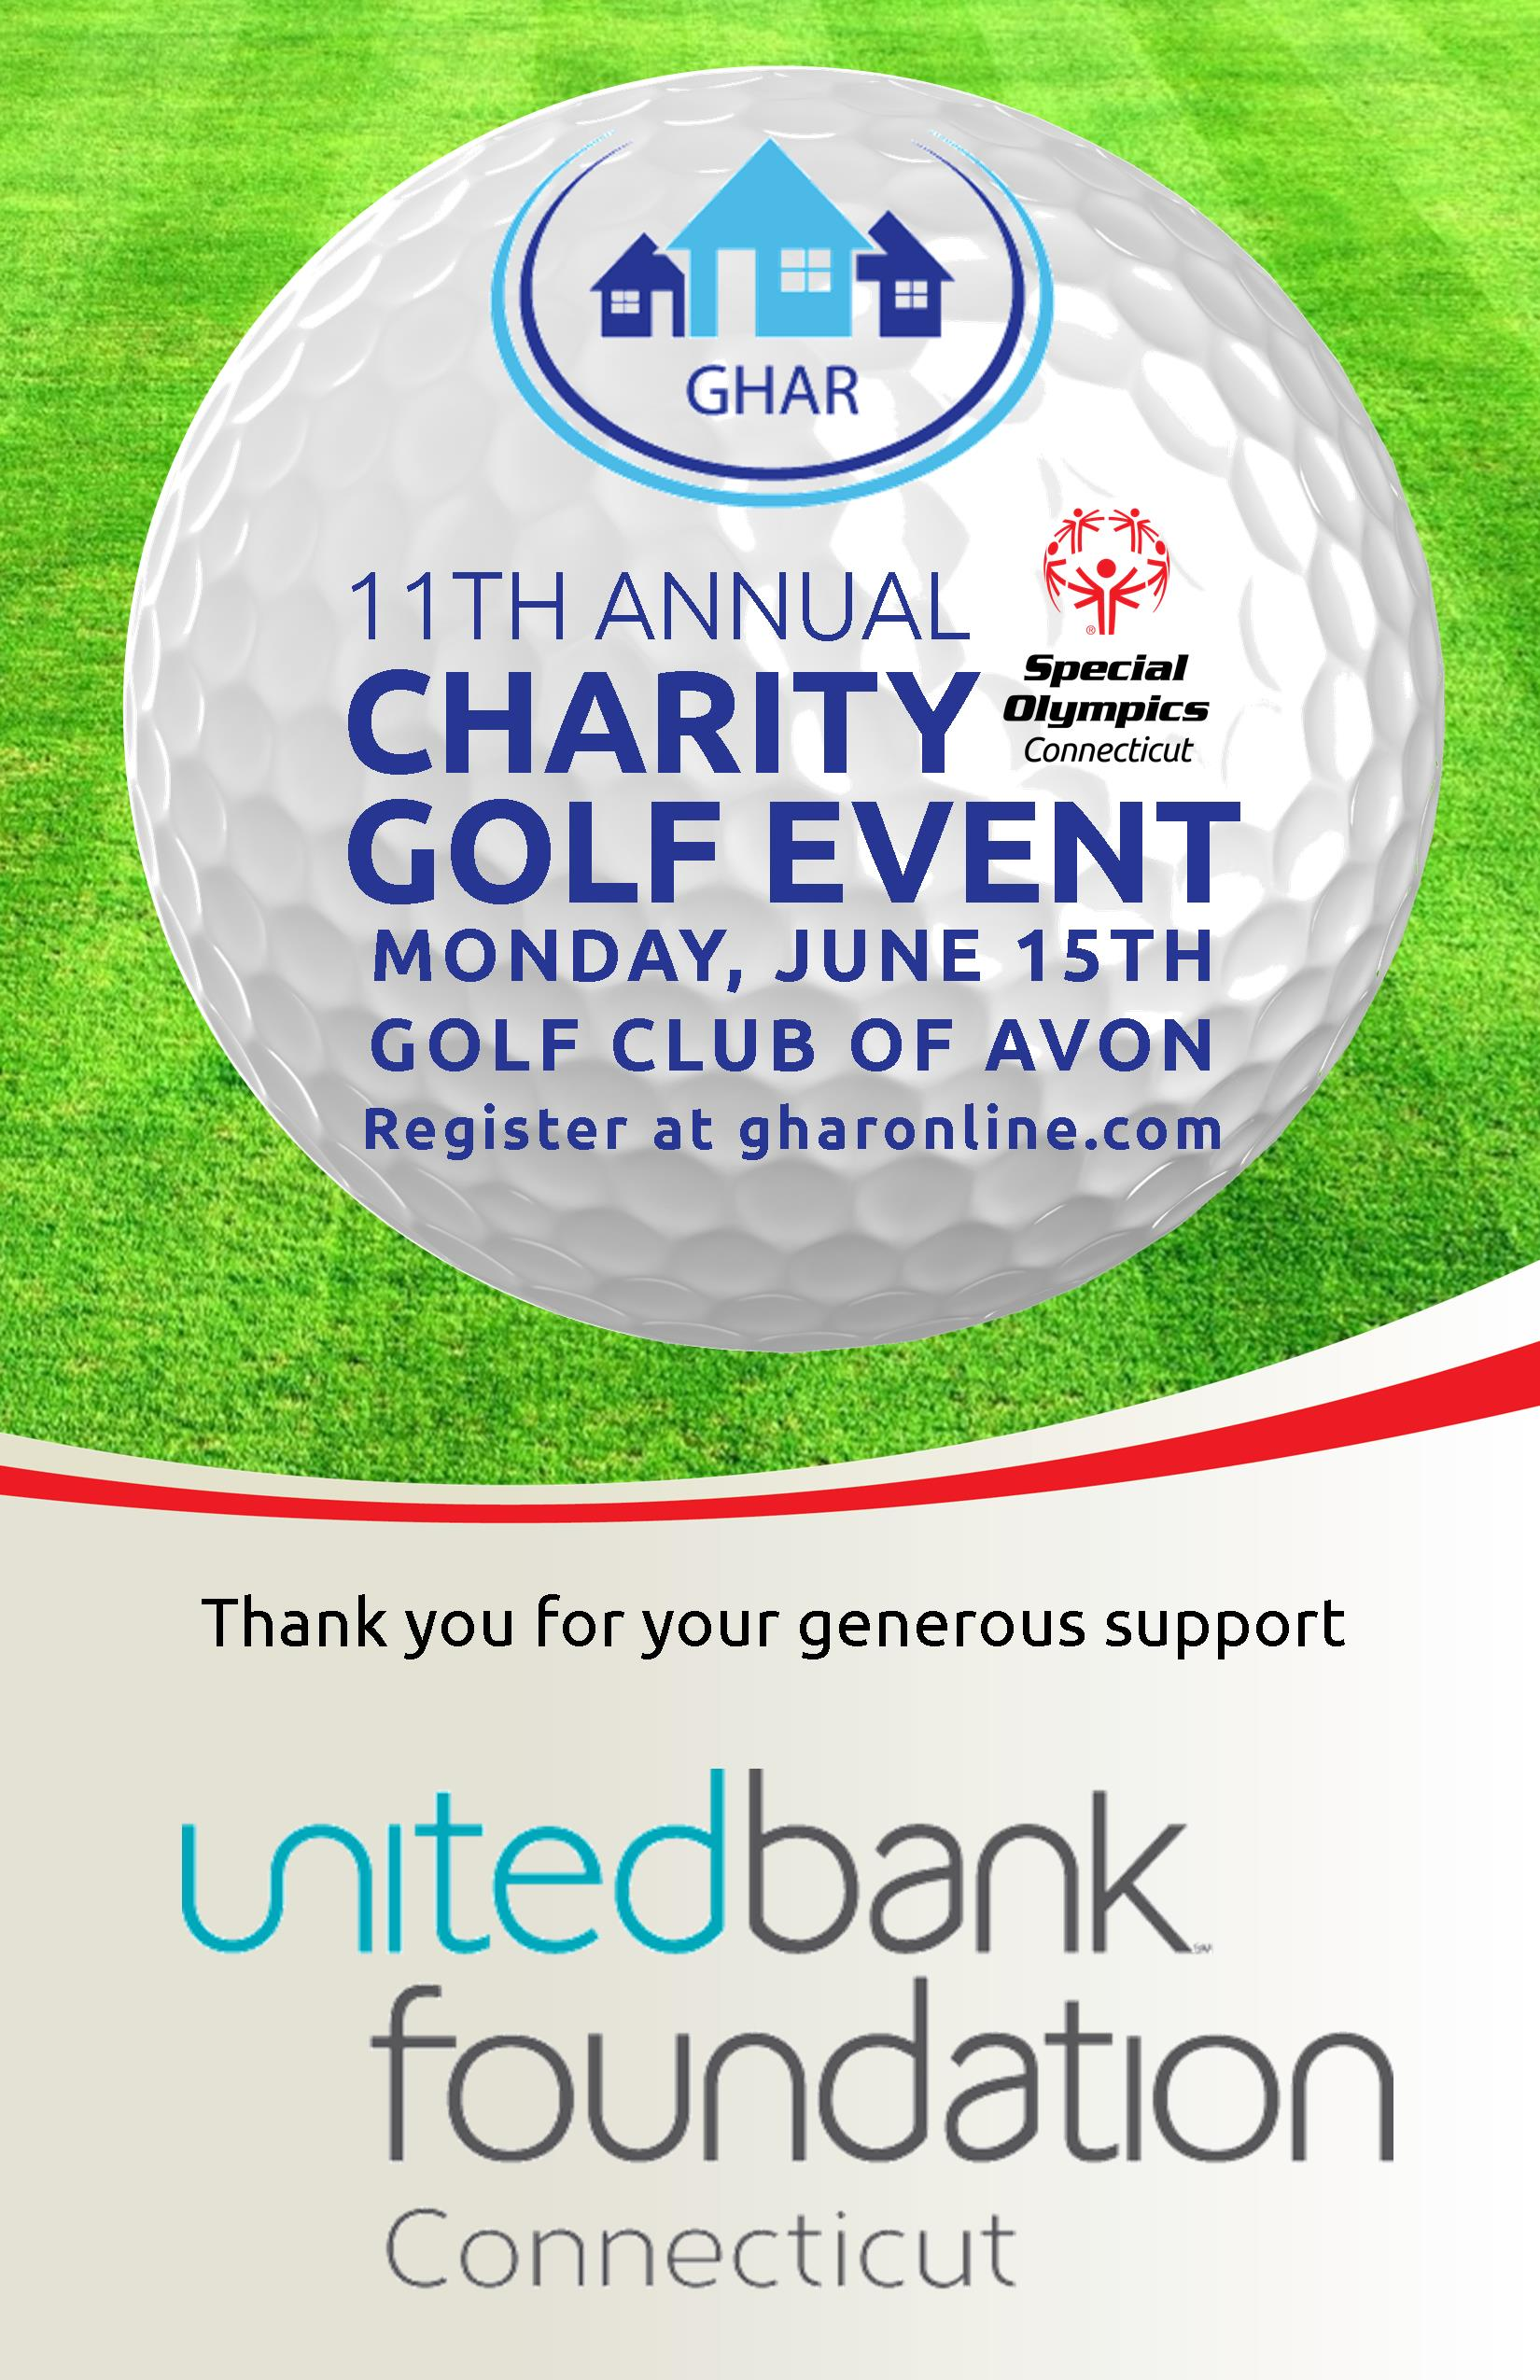 soct 11th annual greater hartford association of realtors charity